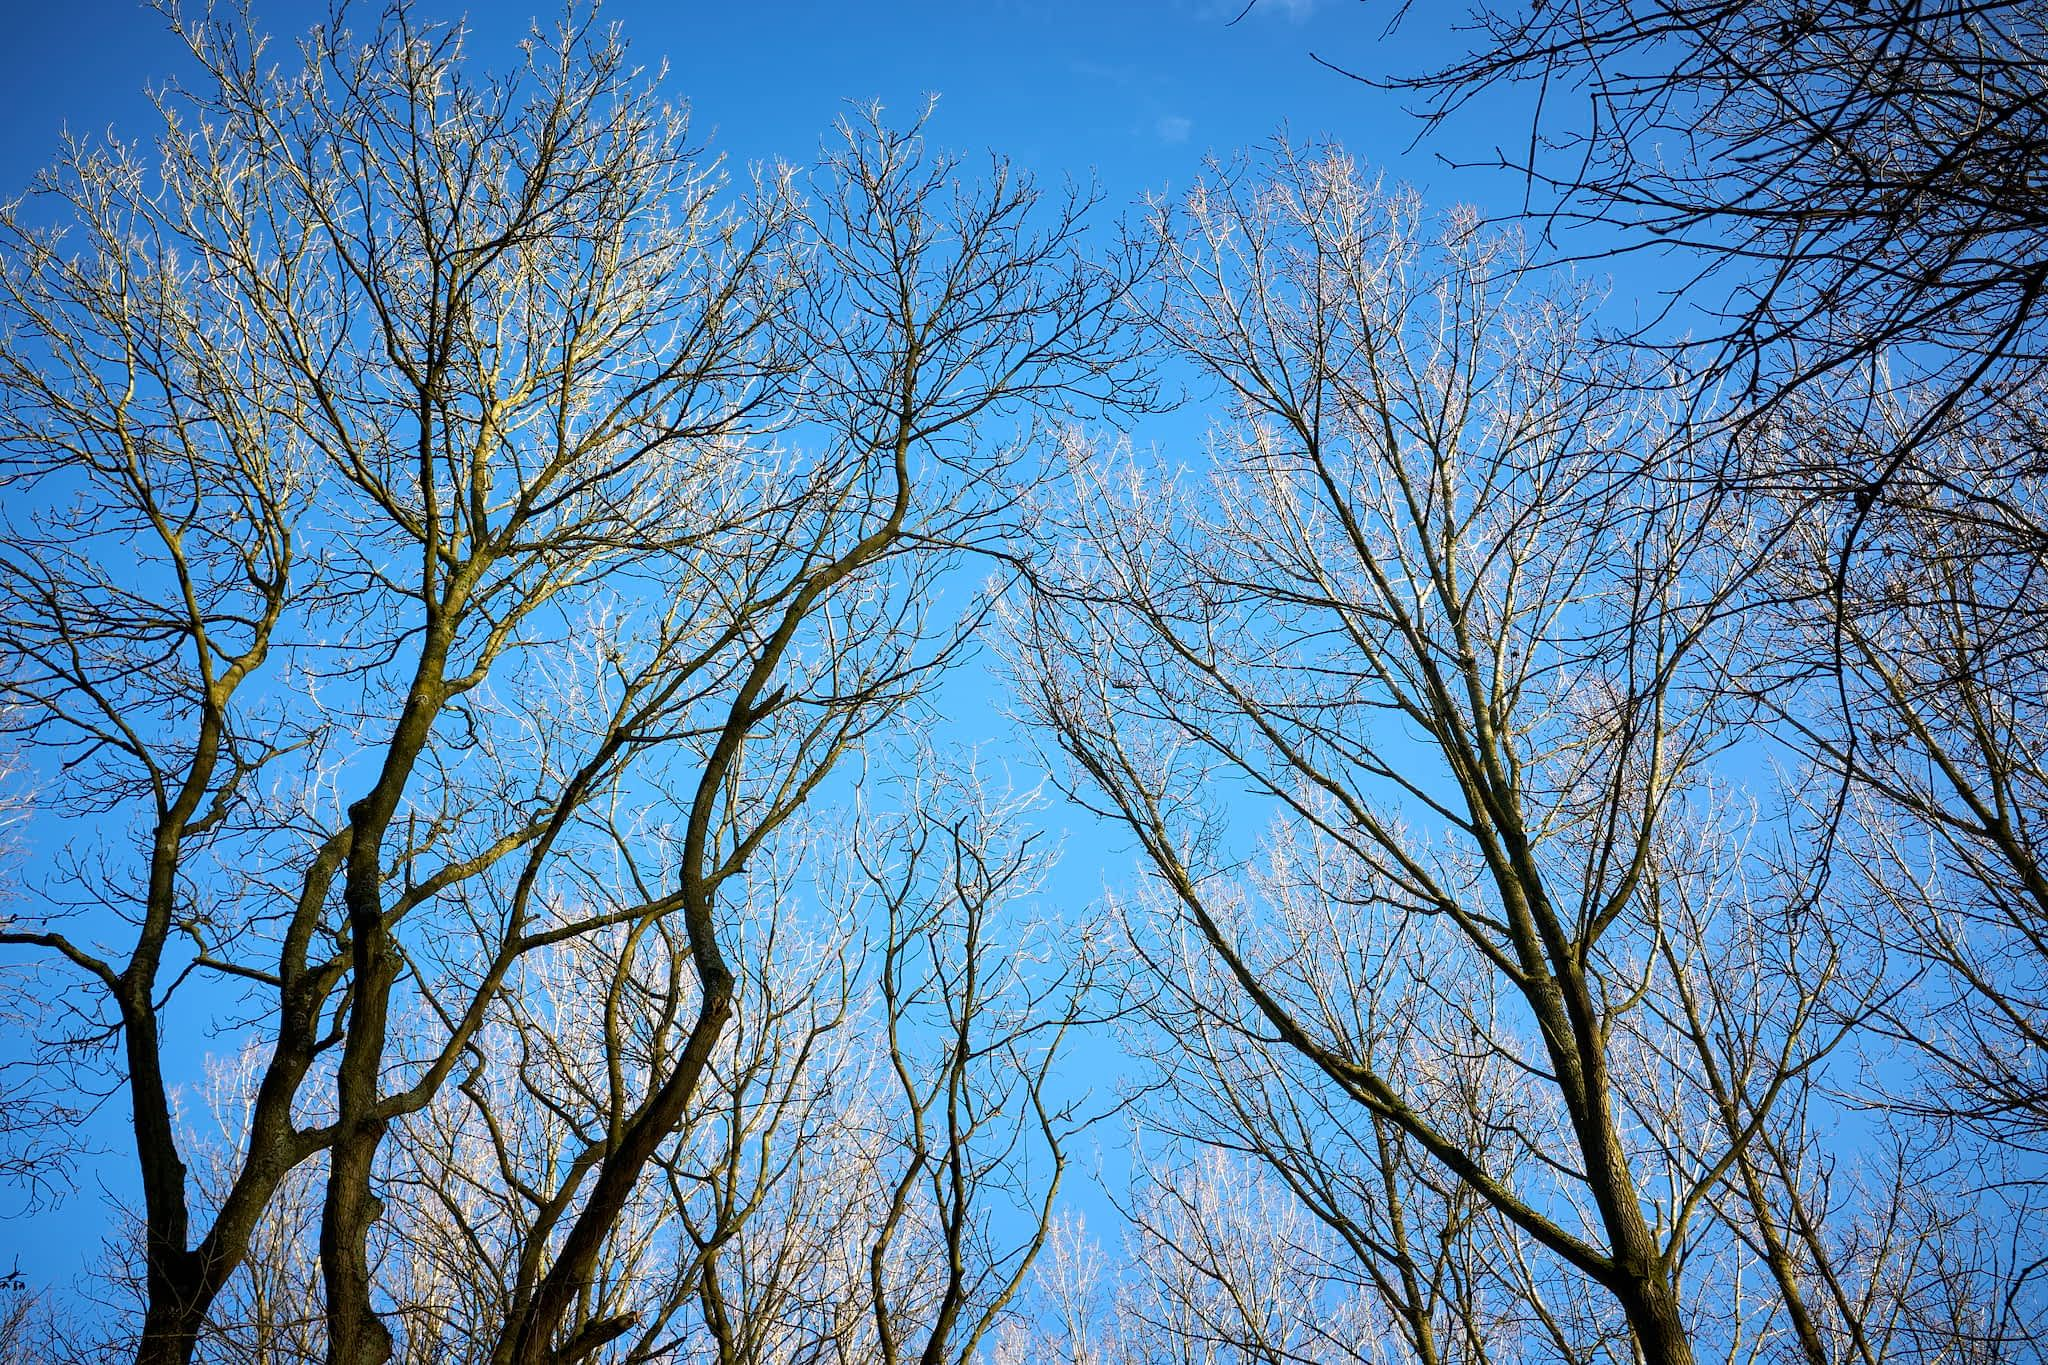 bare trees against blue sky